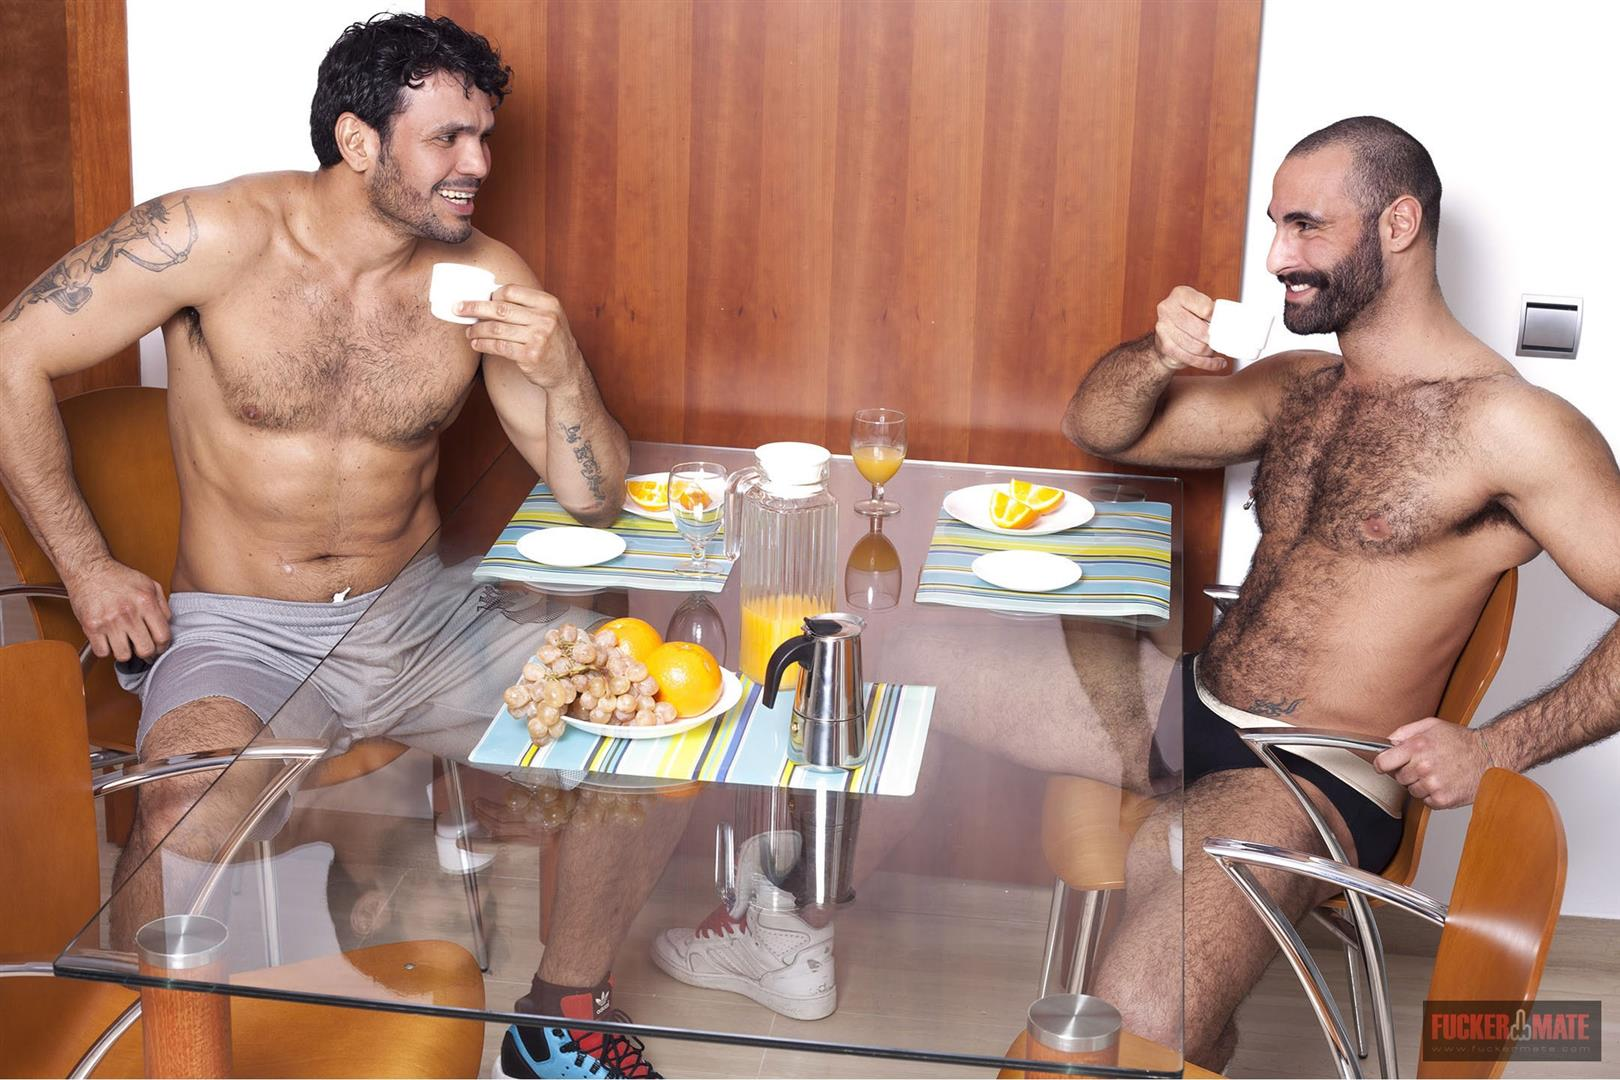 Fuckermate-Jean-Frank-and-Paco-Hairy-Muscle-Hunks-With-Big-Uncut-Cocks-Fucking-Amateur-Gay-Porn-01.jpg